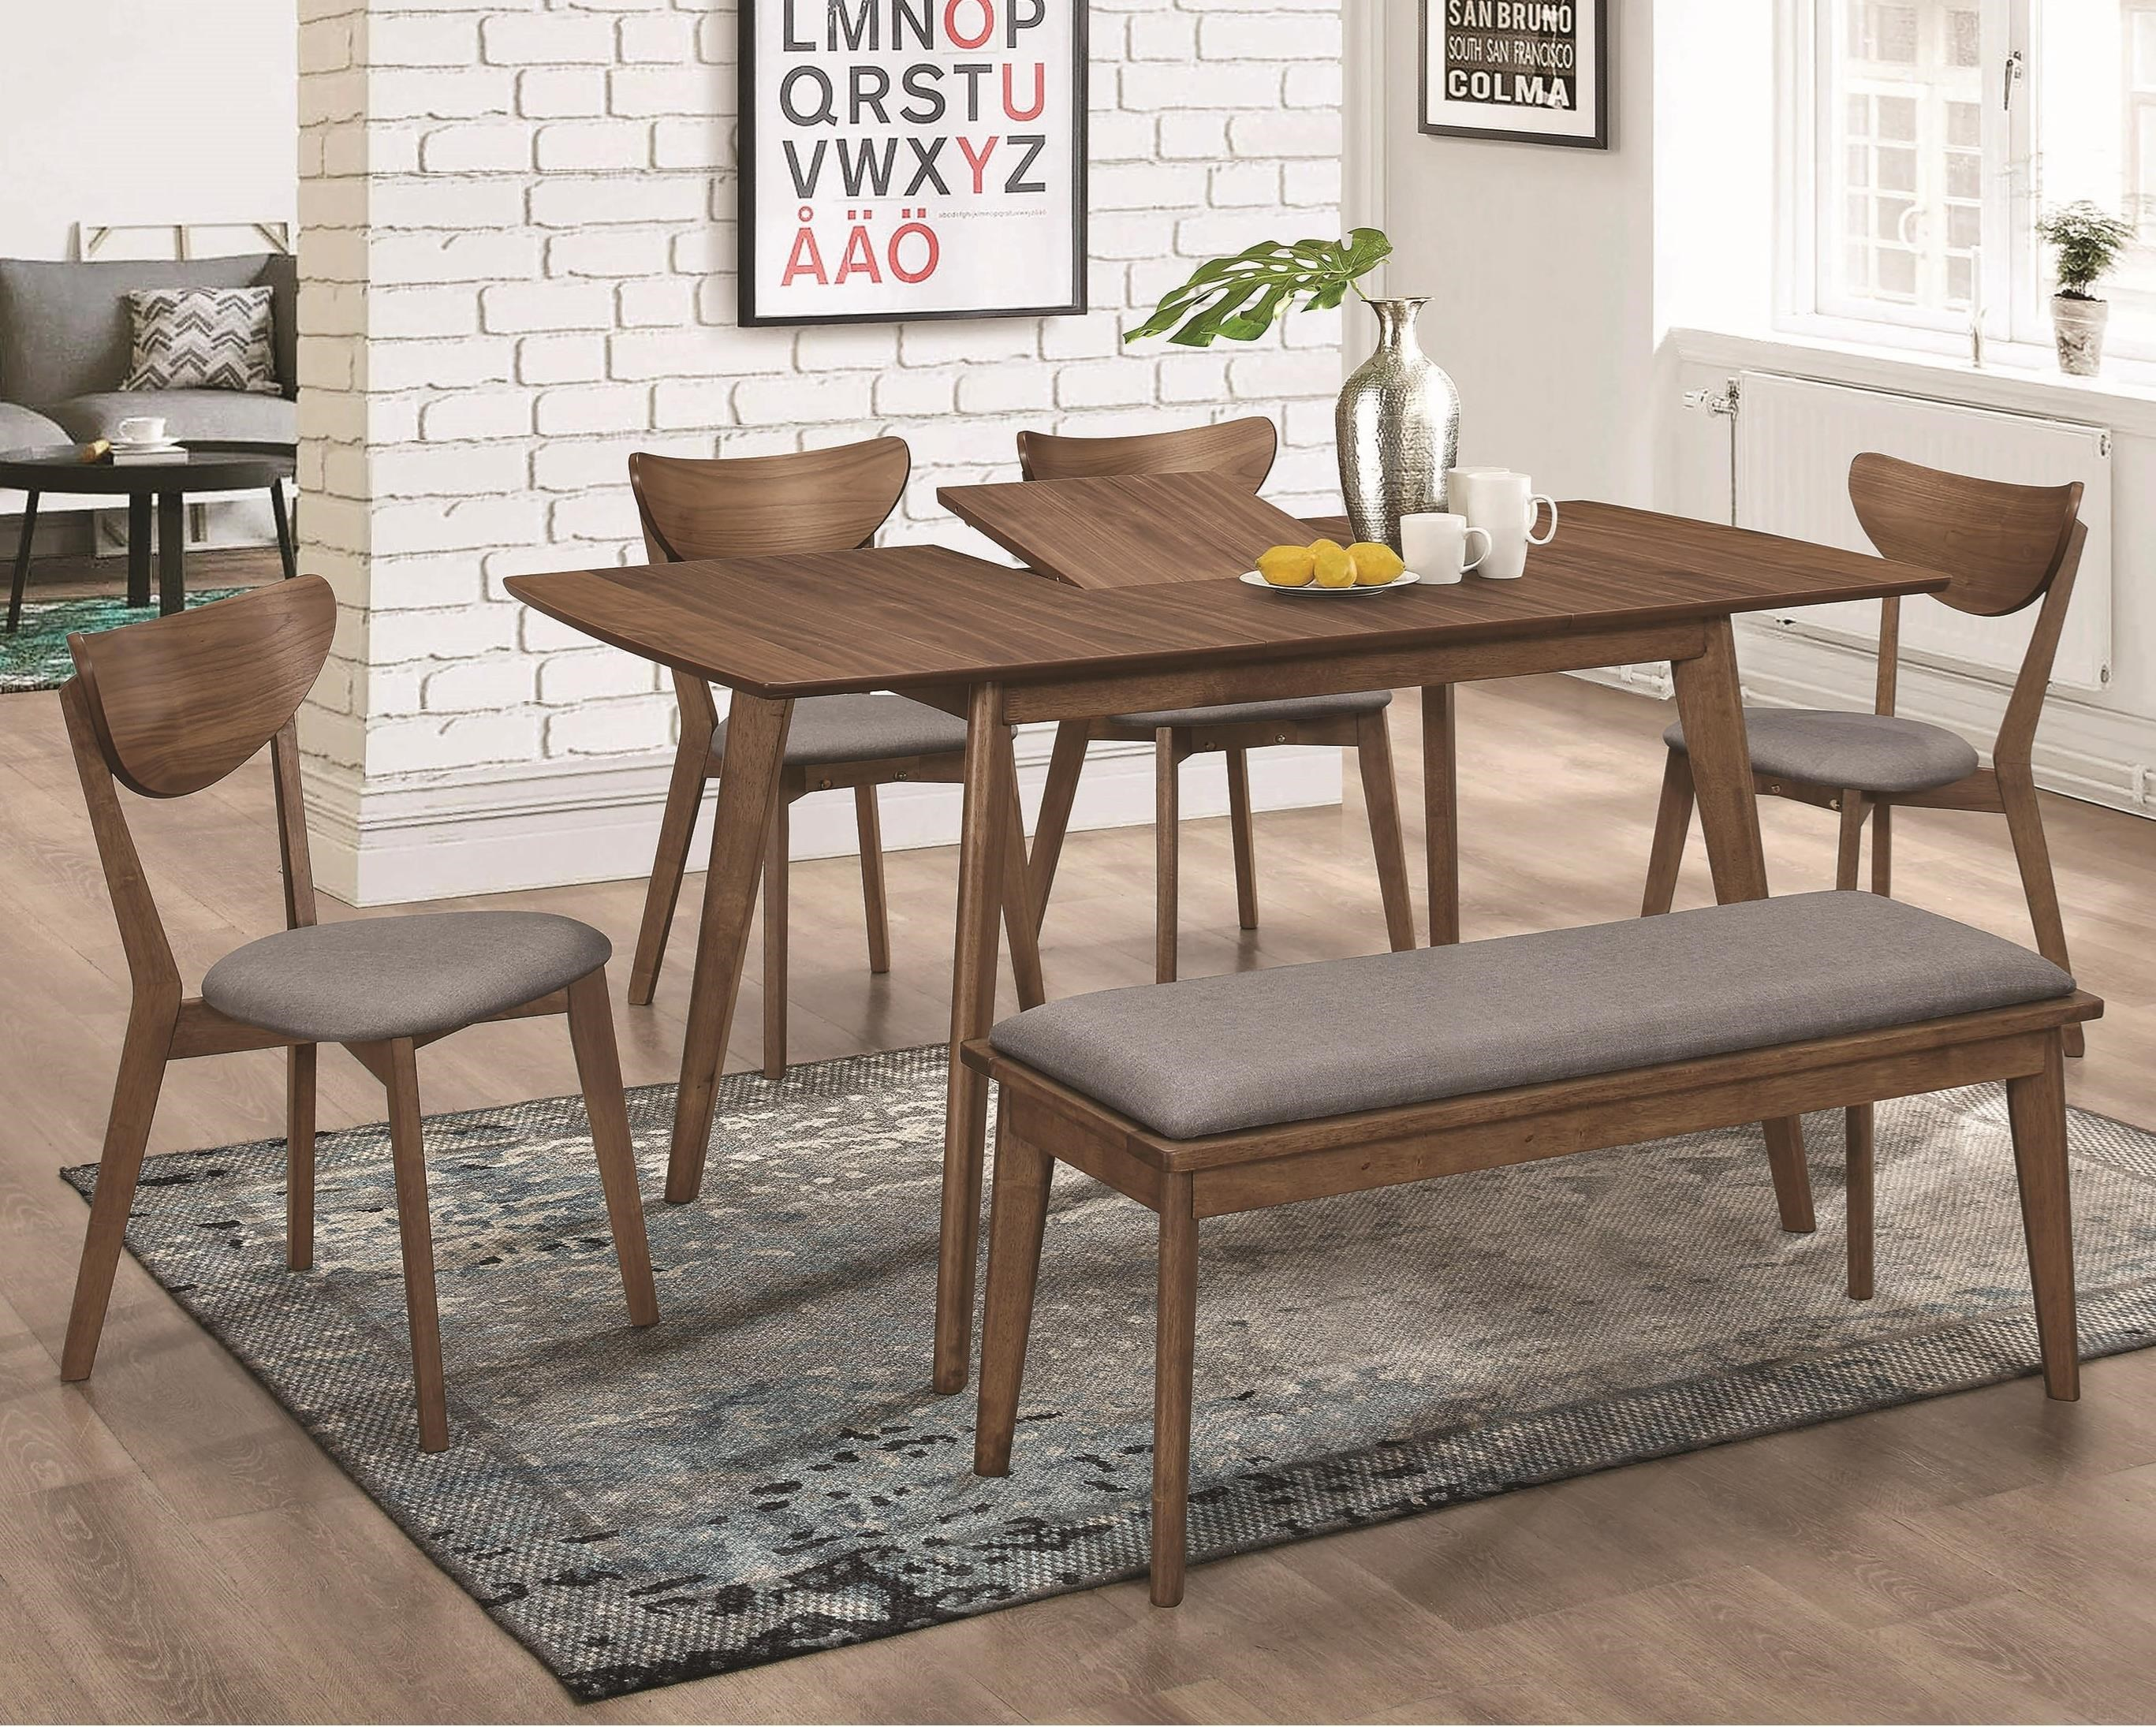 Modern Dining Room Furniture 1080 Mid Century Modern Table And Chair Set With Bench By Coaster At Dunk Bright Furniture